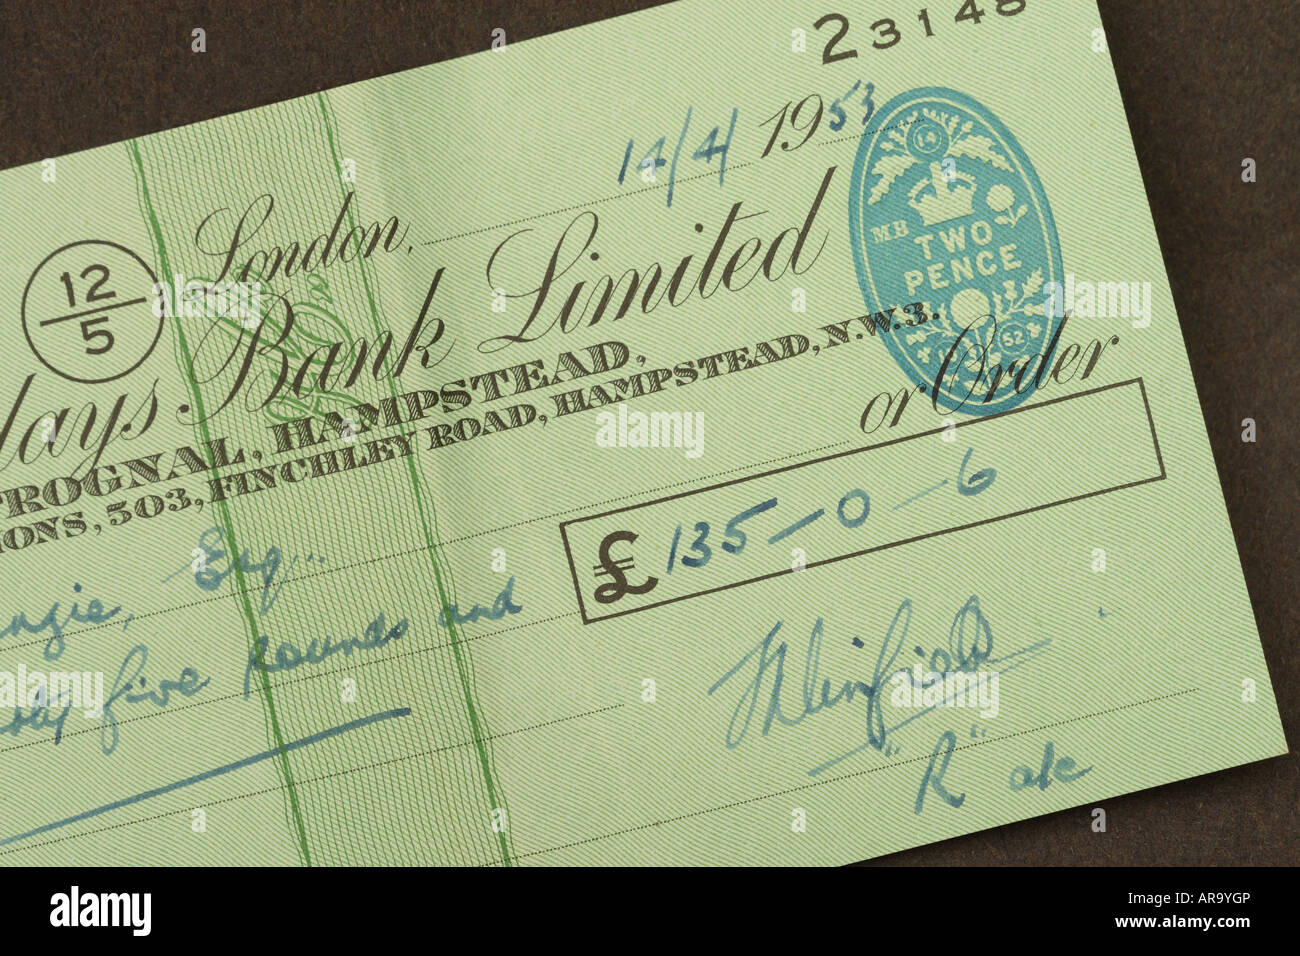 how to write pounds shillings and pence